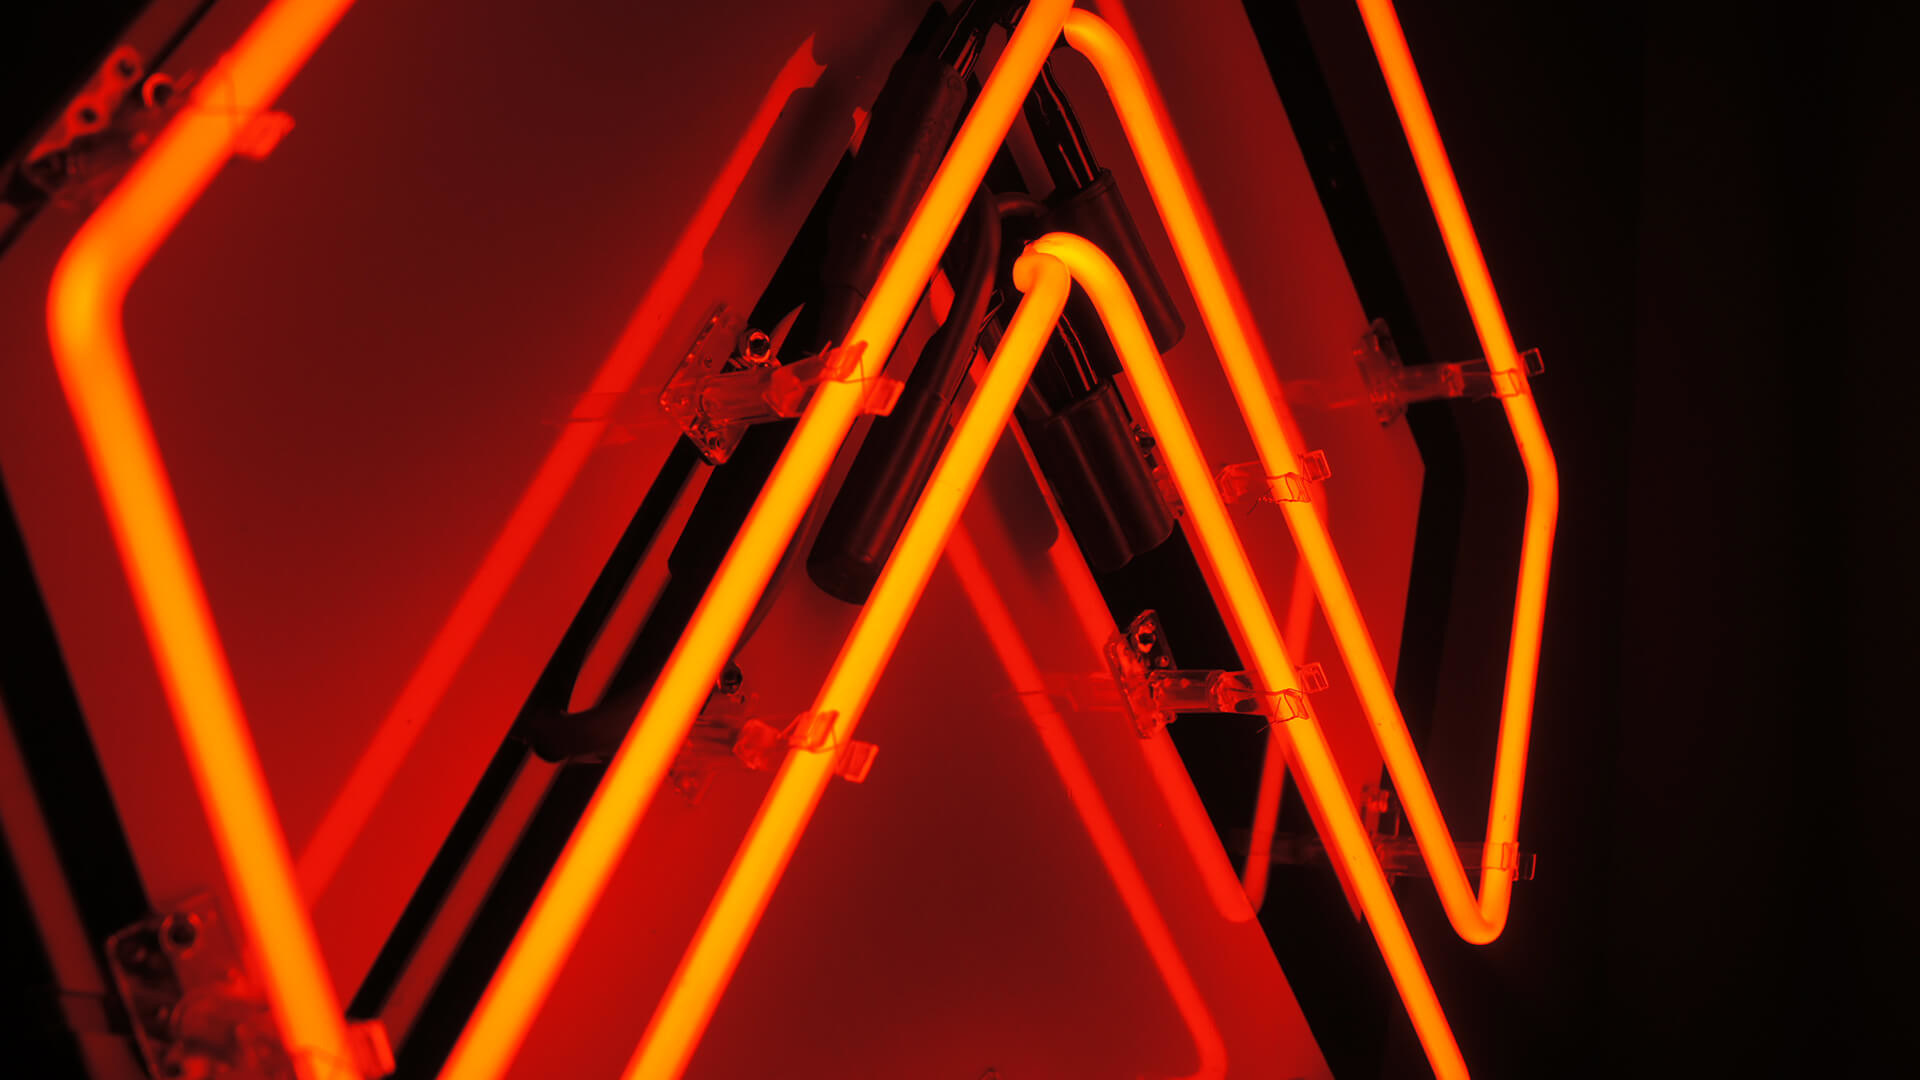 Res: 1920x1080, Awlter Orange Neon Sign Wallpaper 61774